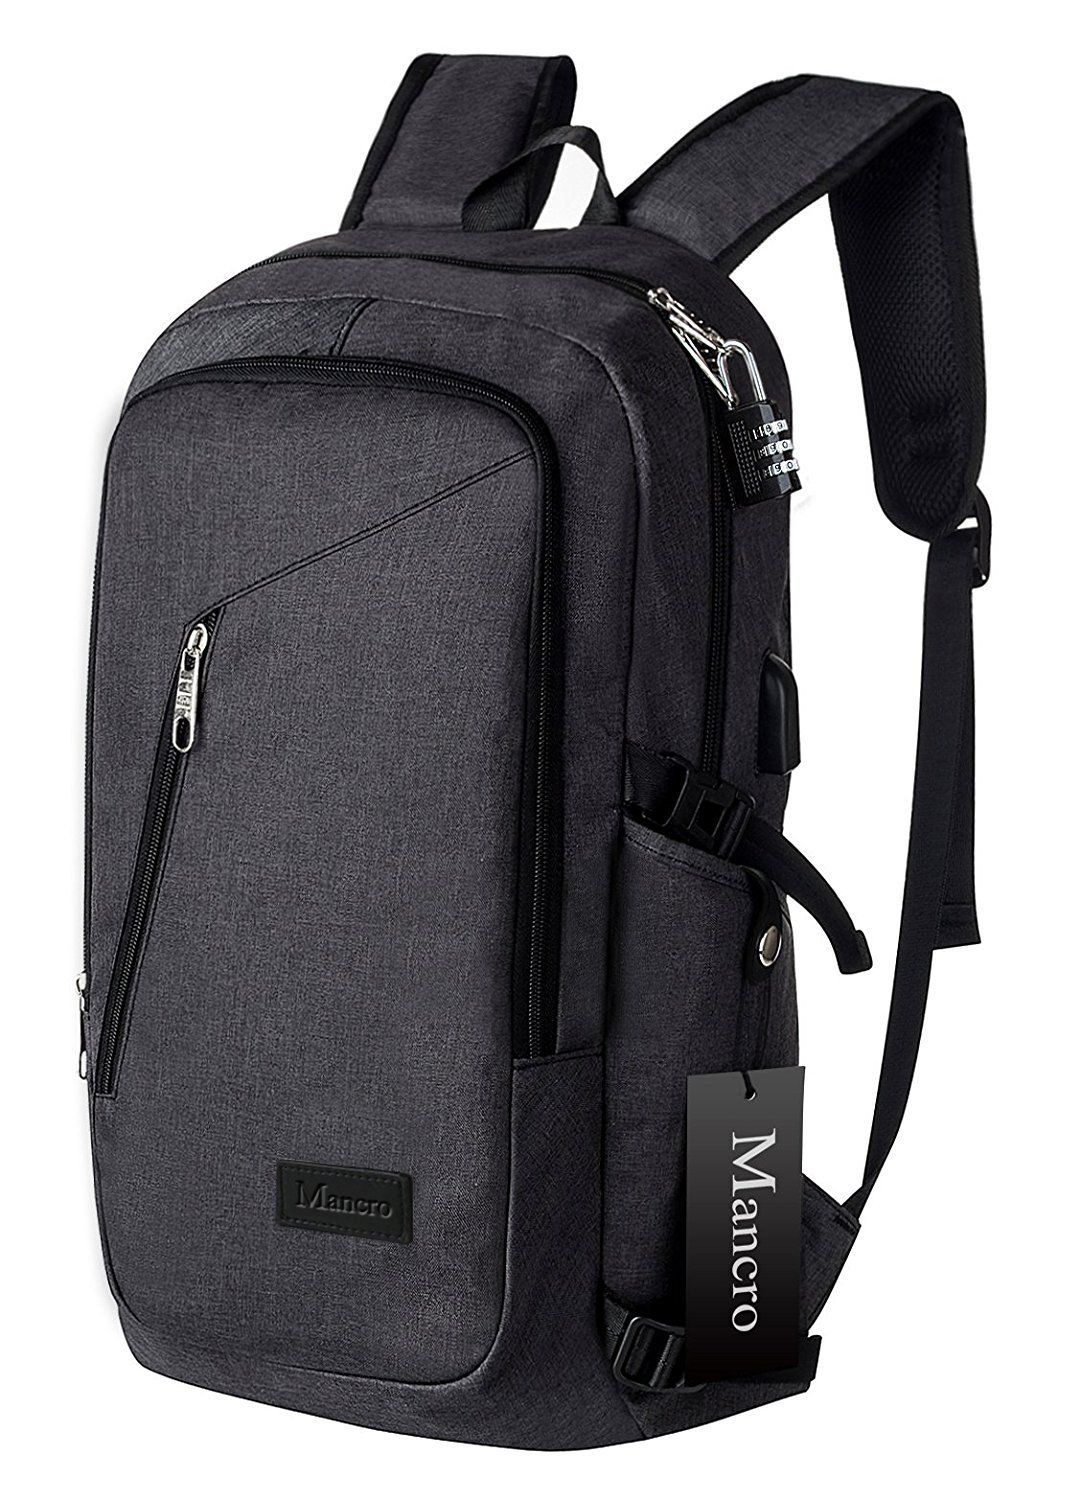 a76b19d294 Top 10 Best Laptop Backpacks Review (March